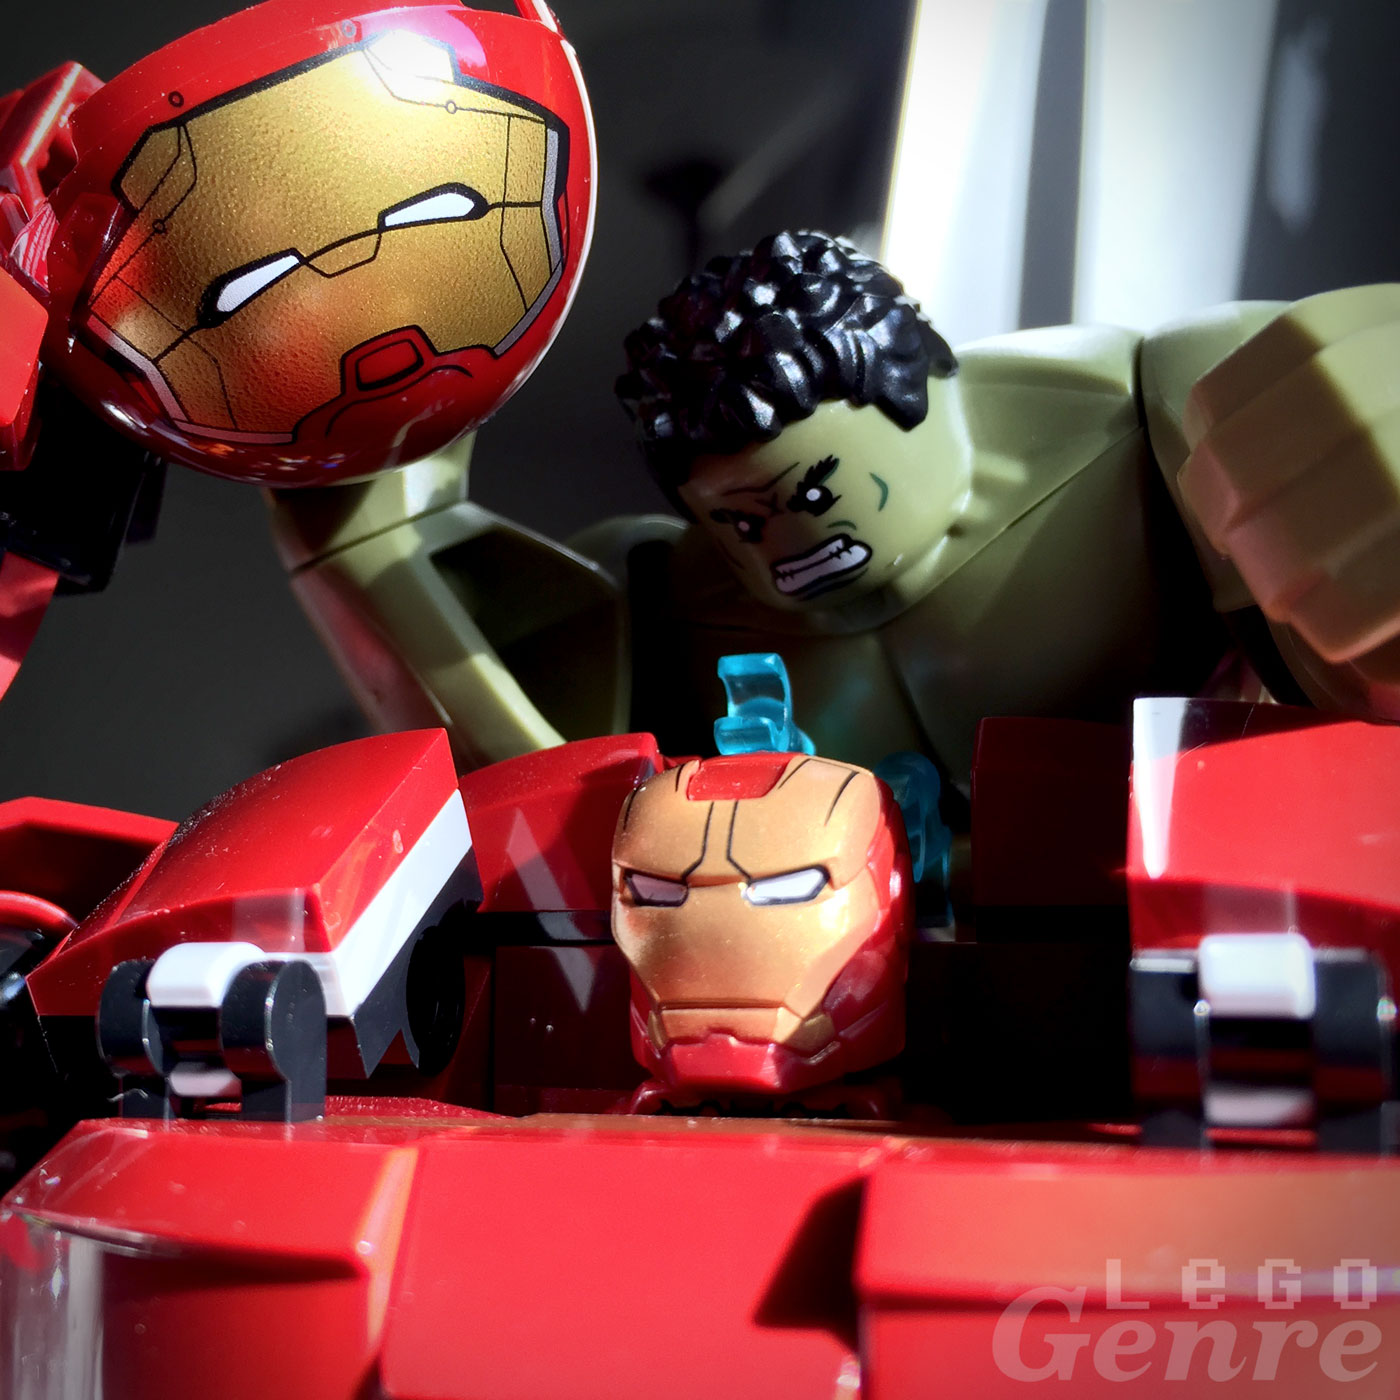 LegoGenre: Iron Man Vs. Hulk